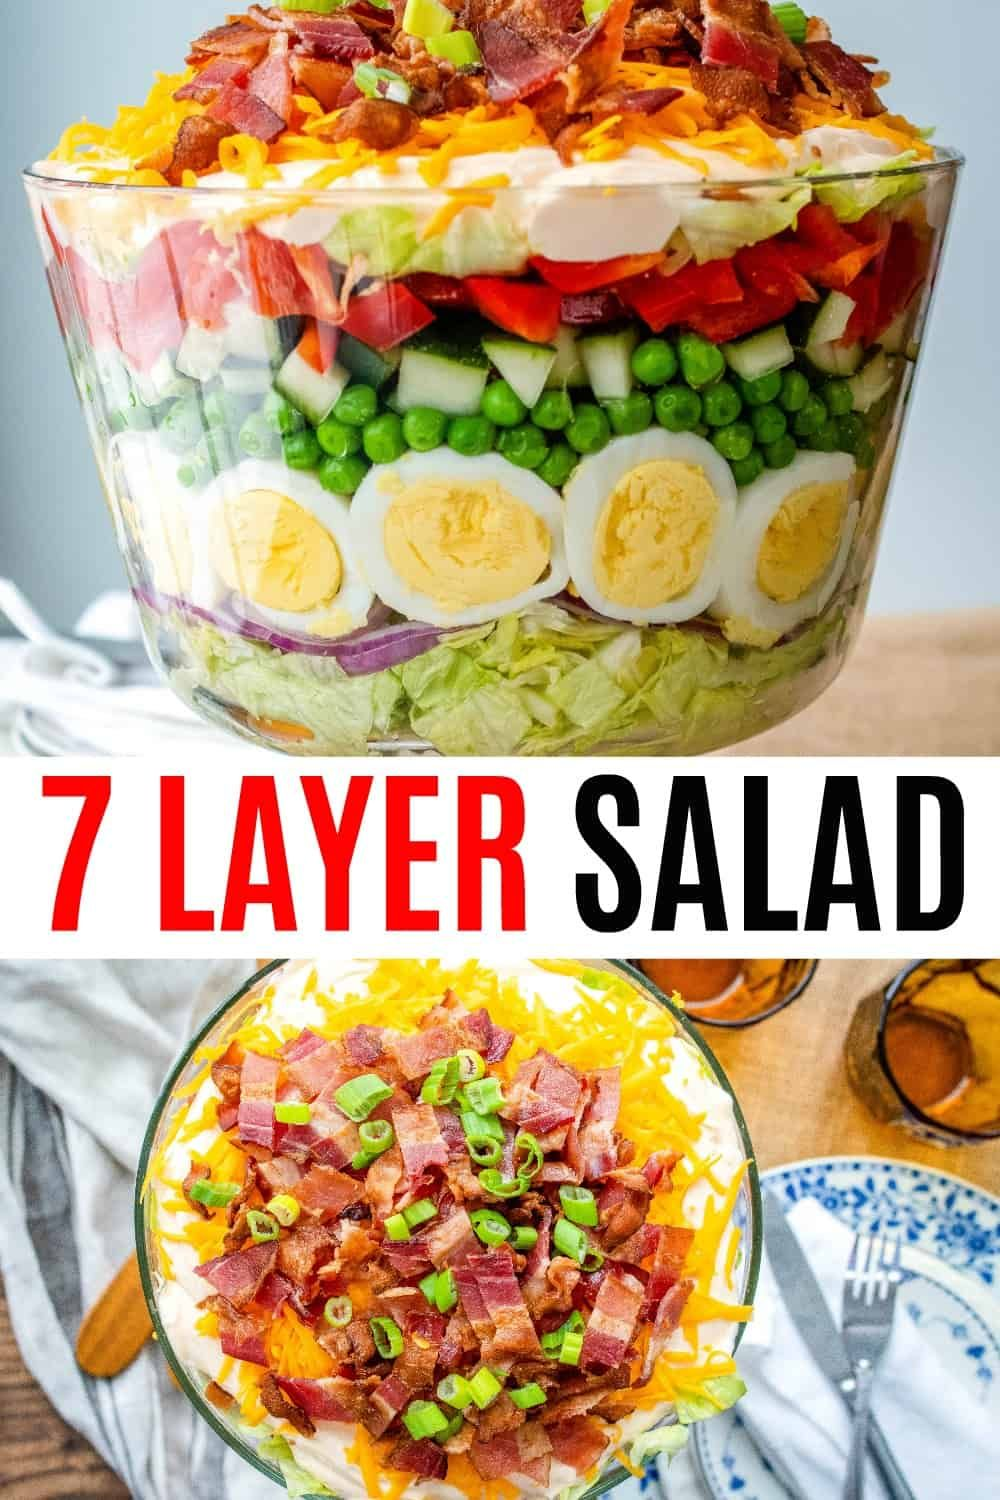 Classic 7 Layer Salad Is An Easy Make Ahead Recipe Perfect For A Crowd With Crisp Veggies And Tangy Dressin Layered Salad Layered Salad Recipes 7 Layer Salad